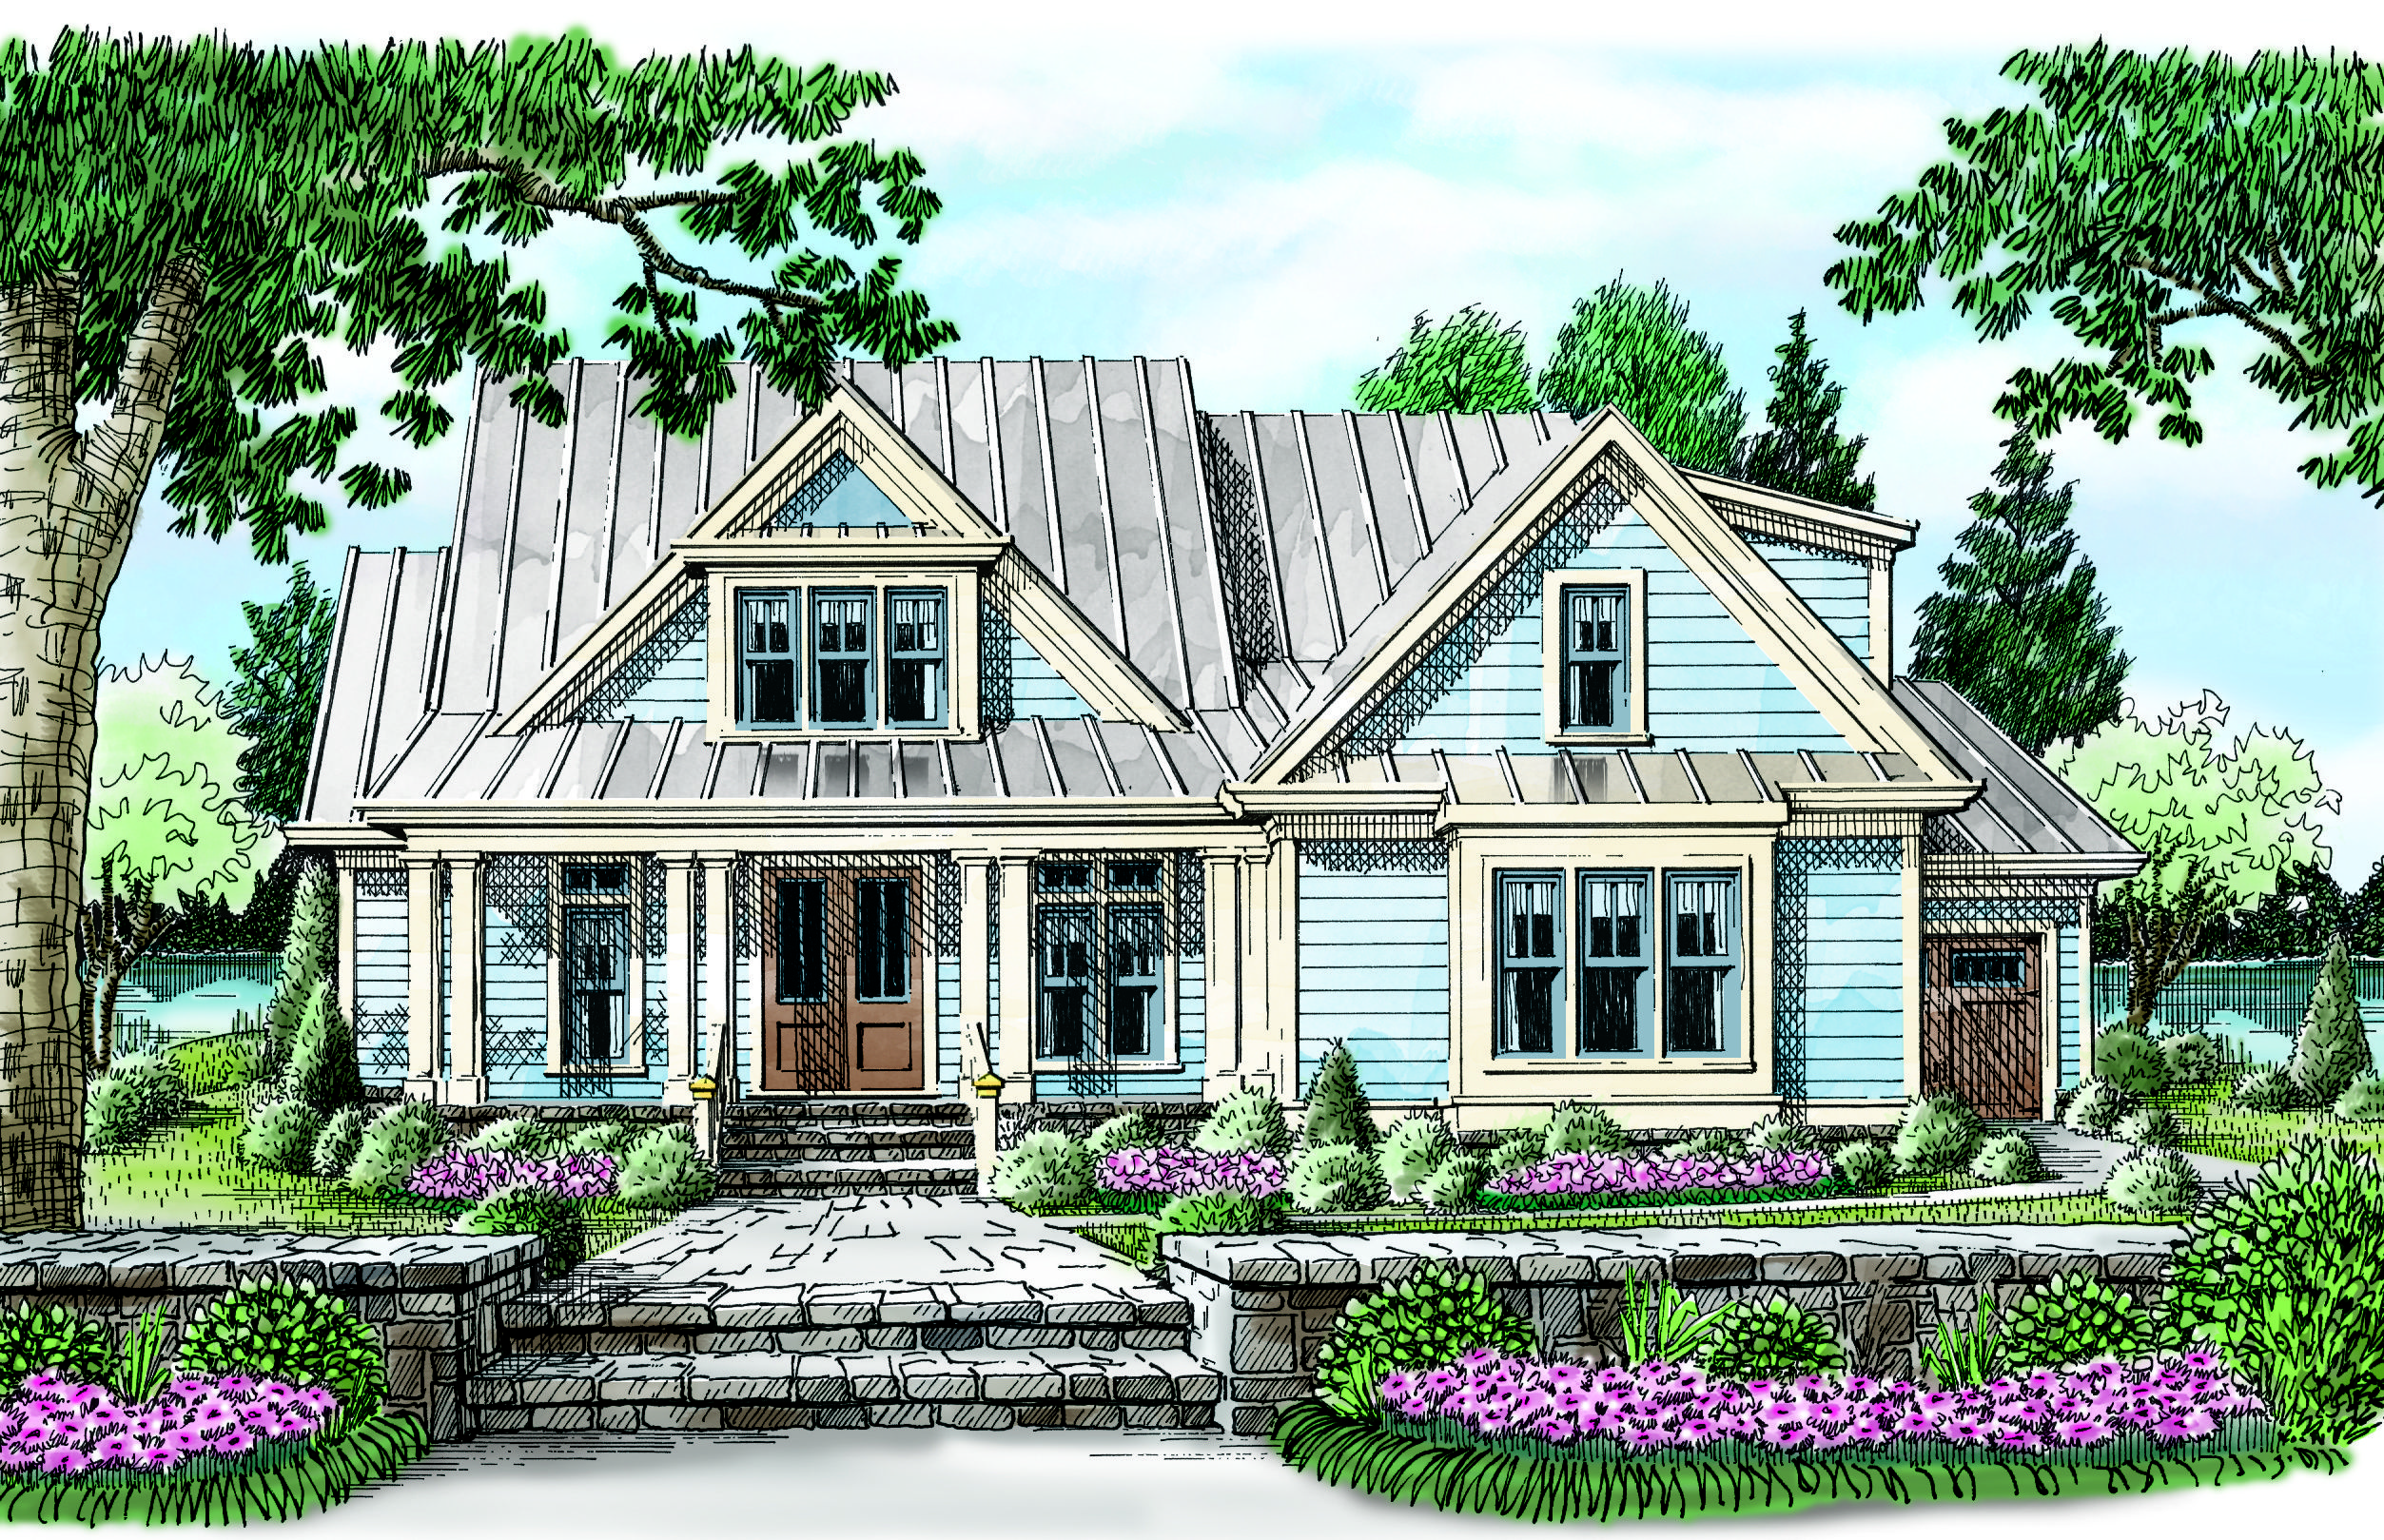 Ansonborough A Frank Betz Plan This Is One Of Our Southern Living Plans In The Works Conta Southern House Plans Craftsman House Plans House Plans Farmhouse